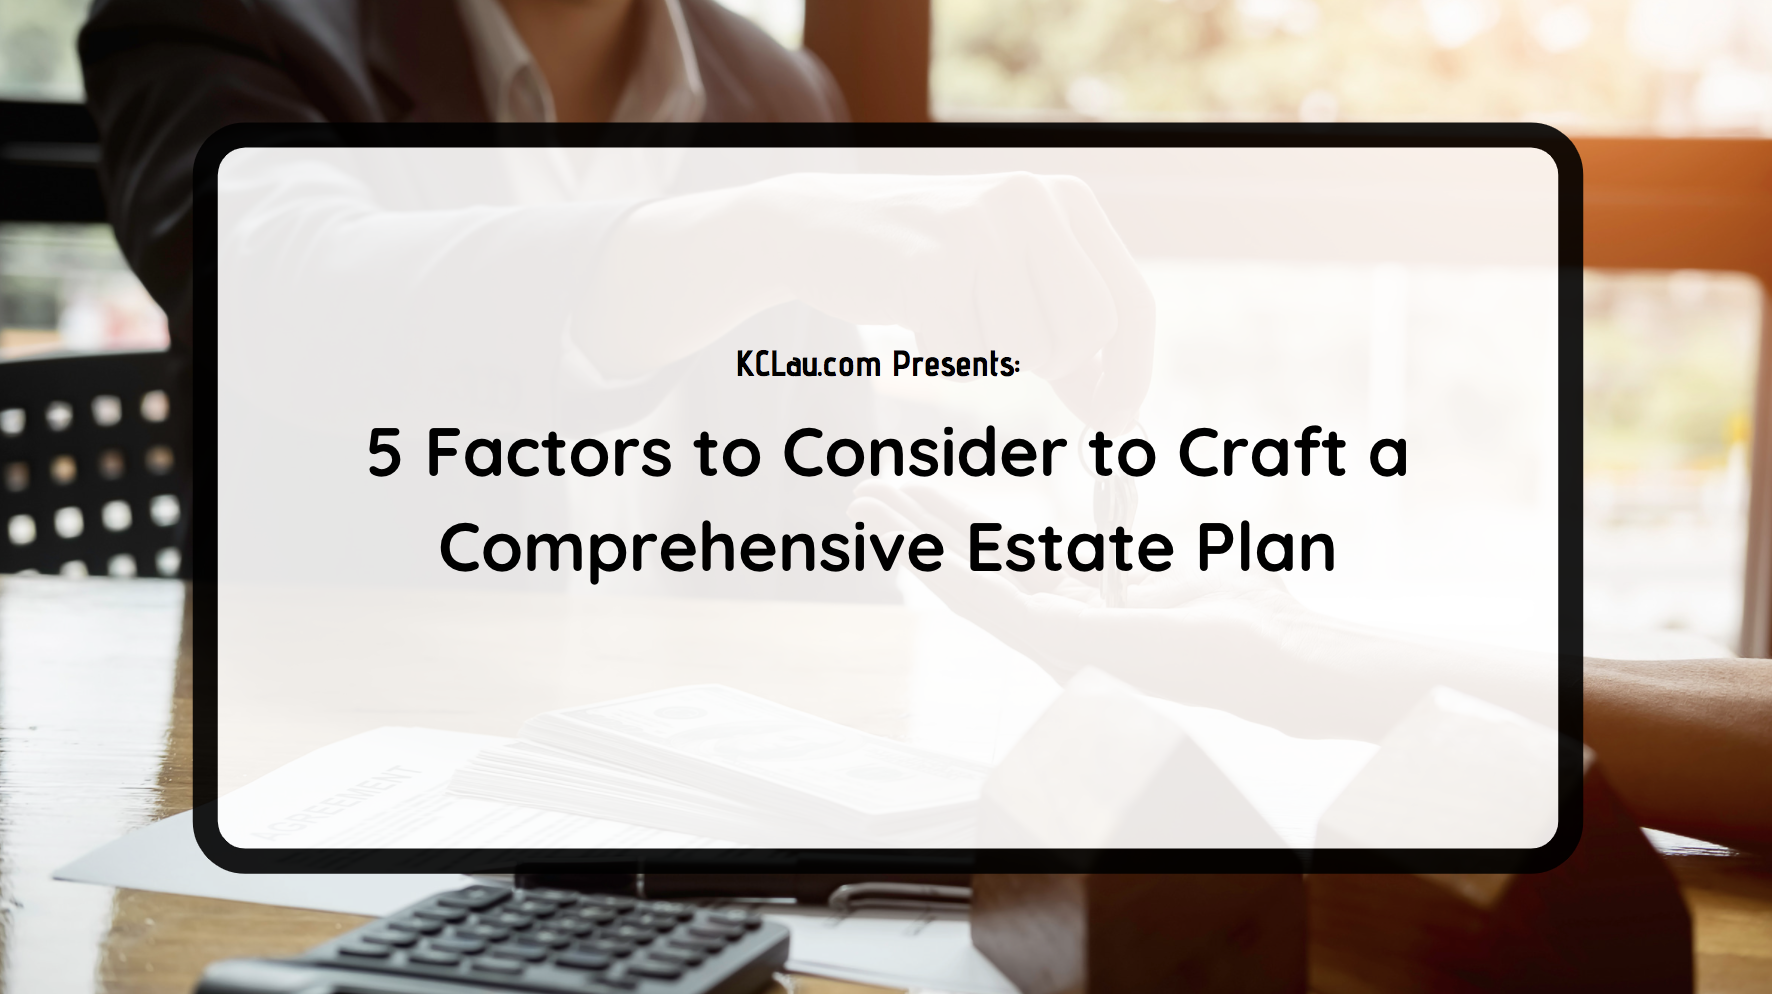 5 Factors to Consider to Craft a Comprehensive Estate Plan